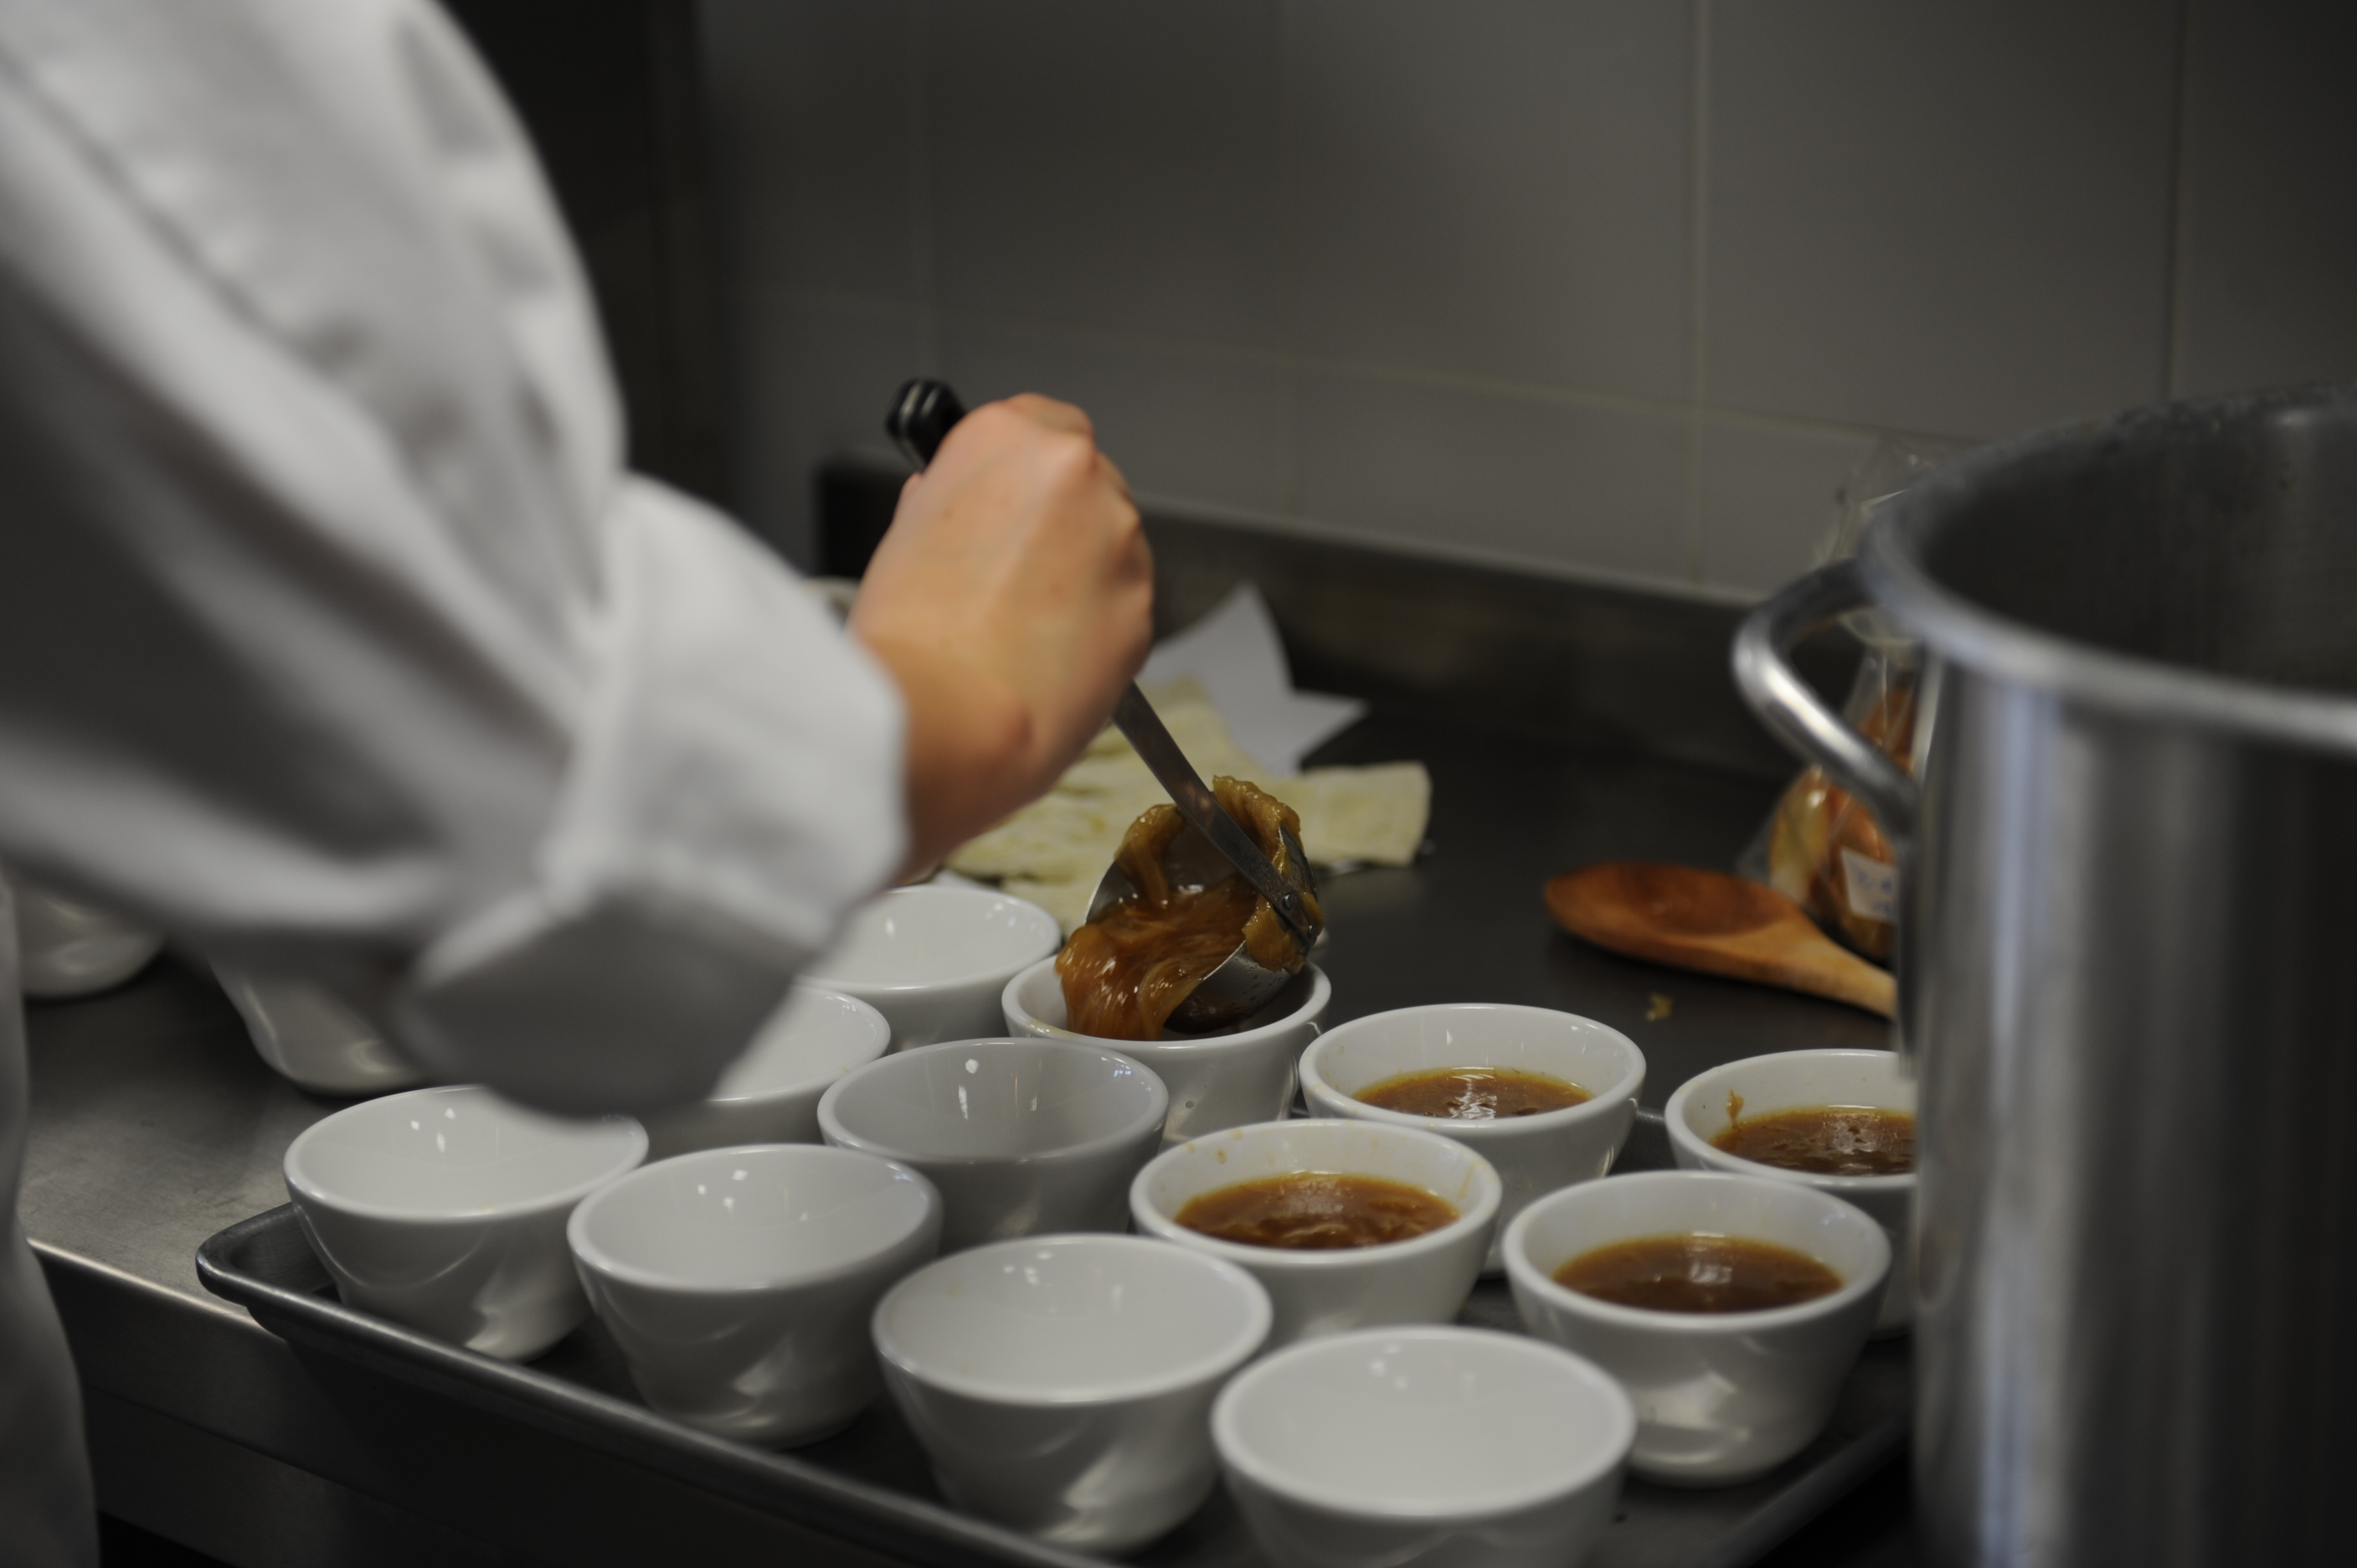 A cook ladles brown onion soup into bowls, four of which are full and eight of which are empty. A large pot is to her side.